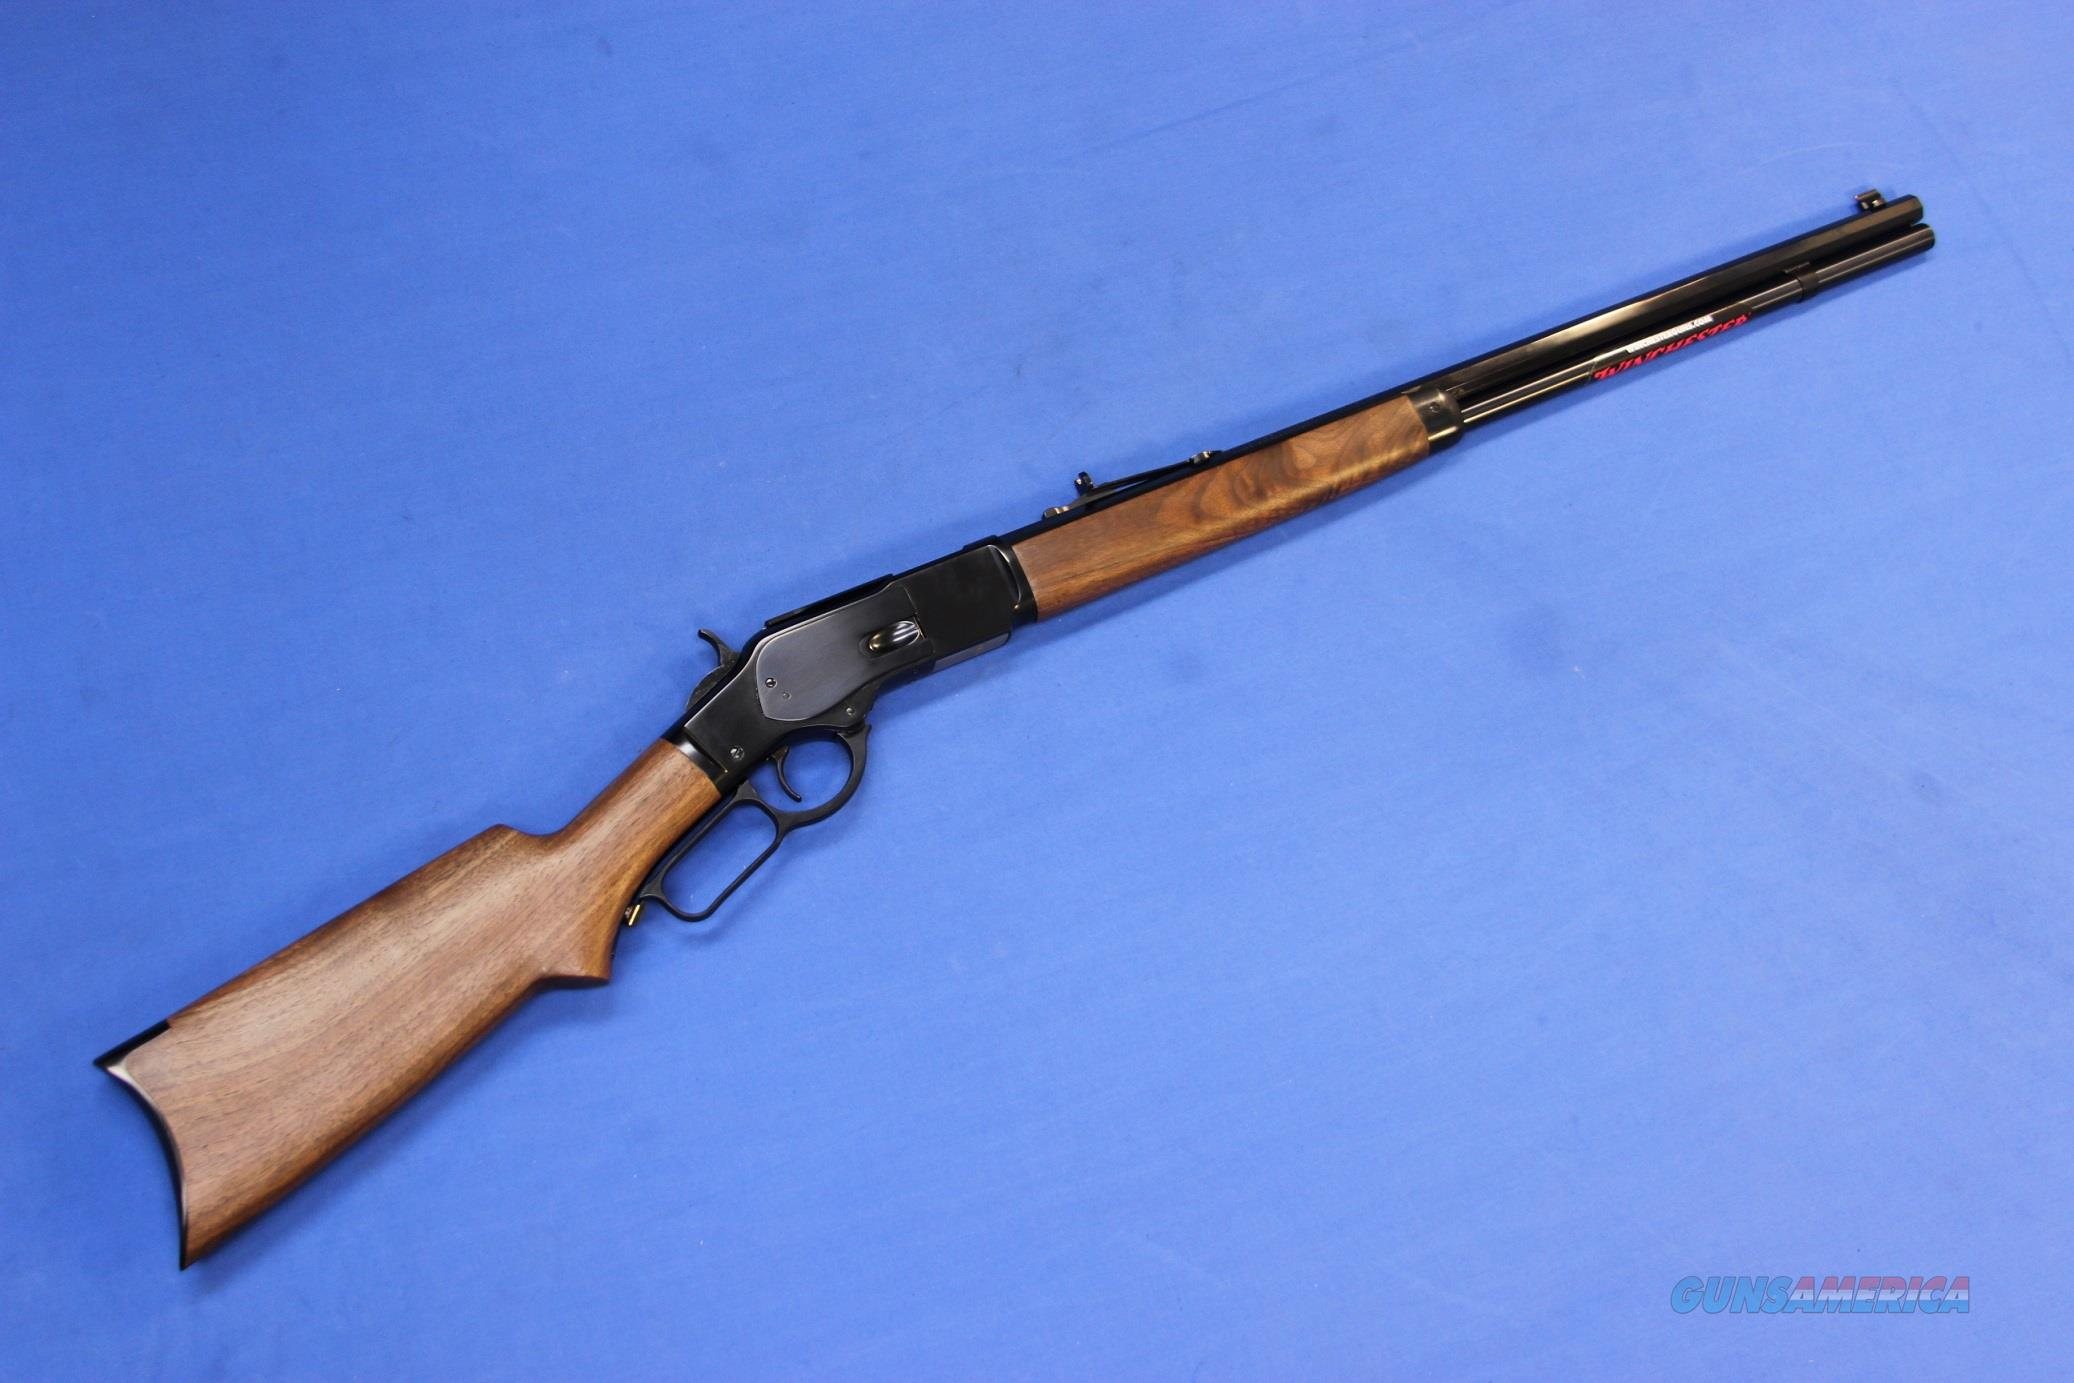 WINCHESTER 1873 SPORTER .357 MAG/.38 SP - NEW!   Guns > Rifles > Winchester Rifles - Modern Lever > Other Lever > Post-64